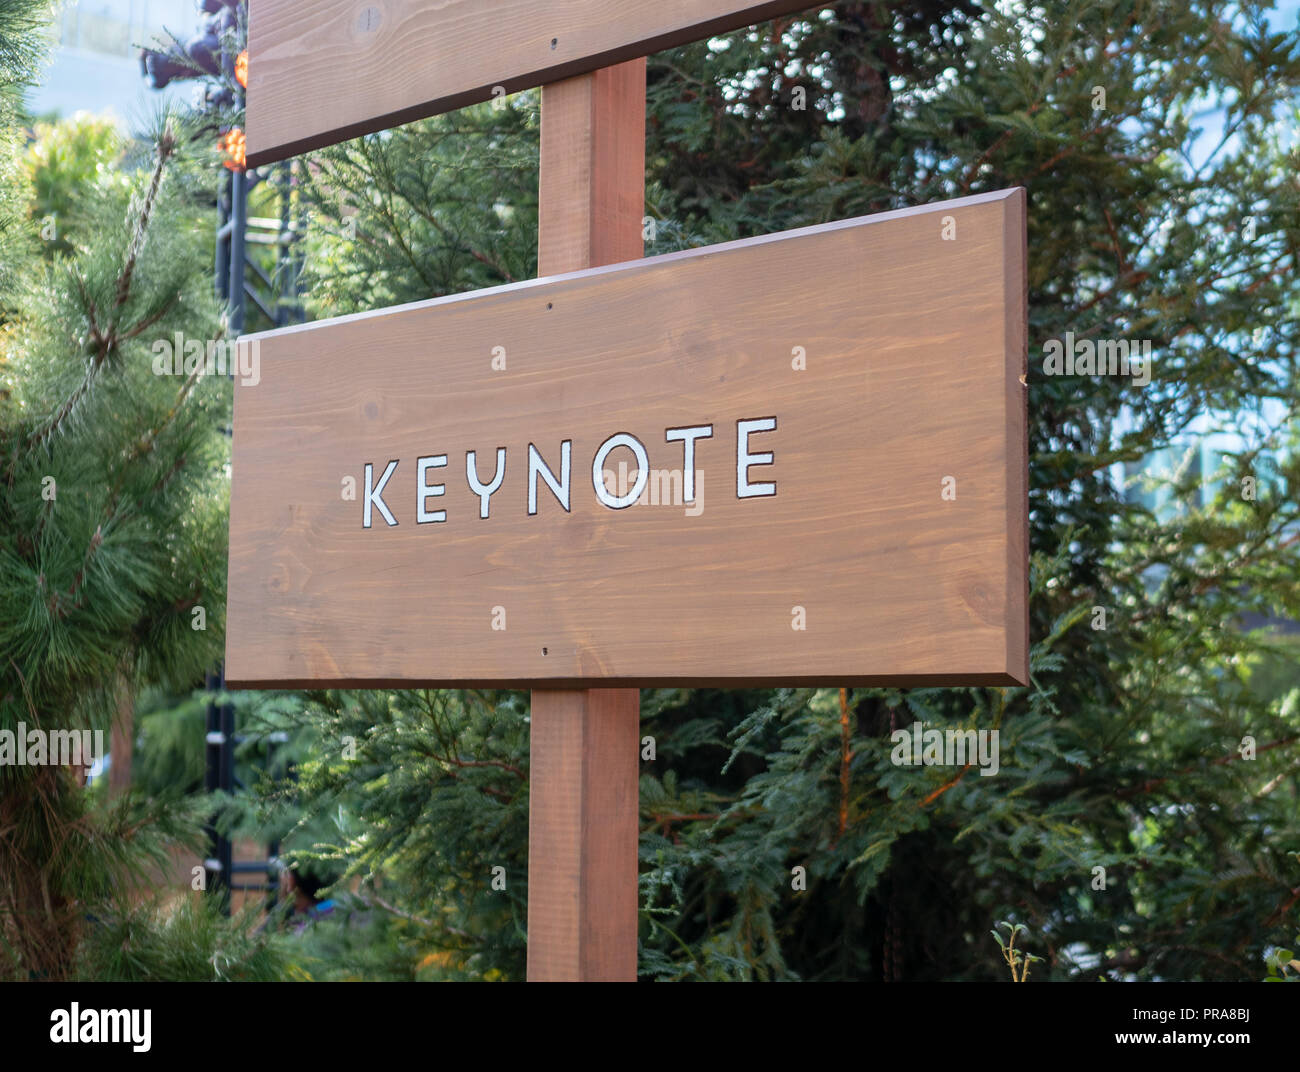 Keynote wooden sign post providing direction - Stock Image